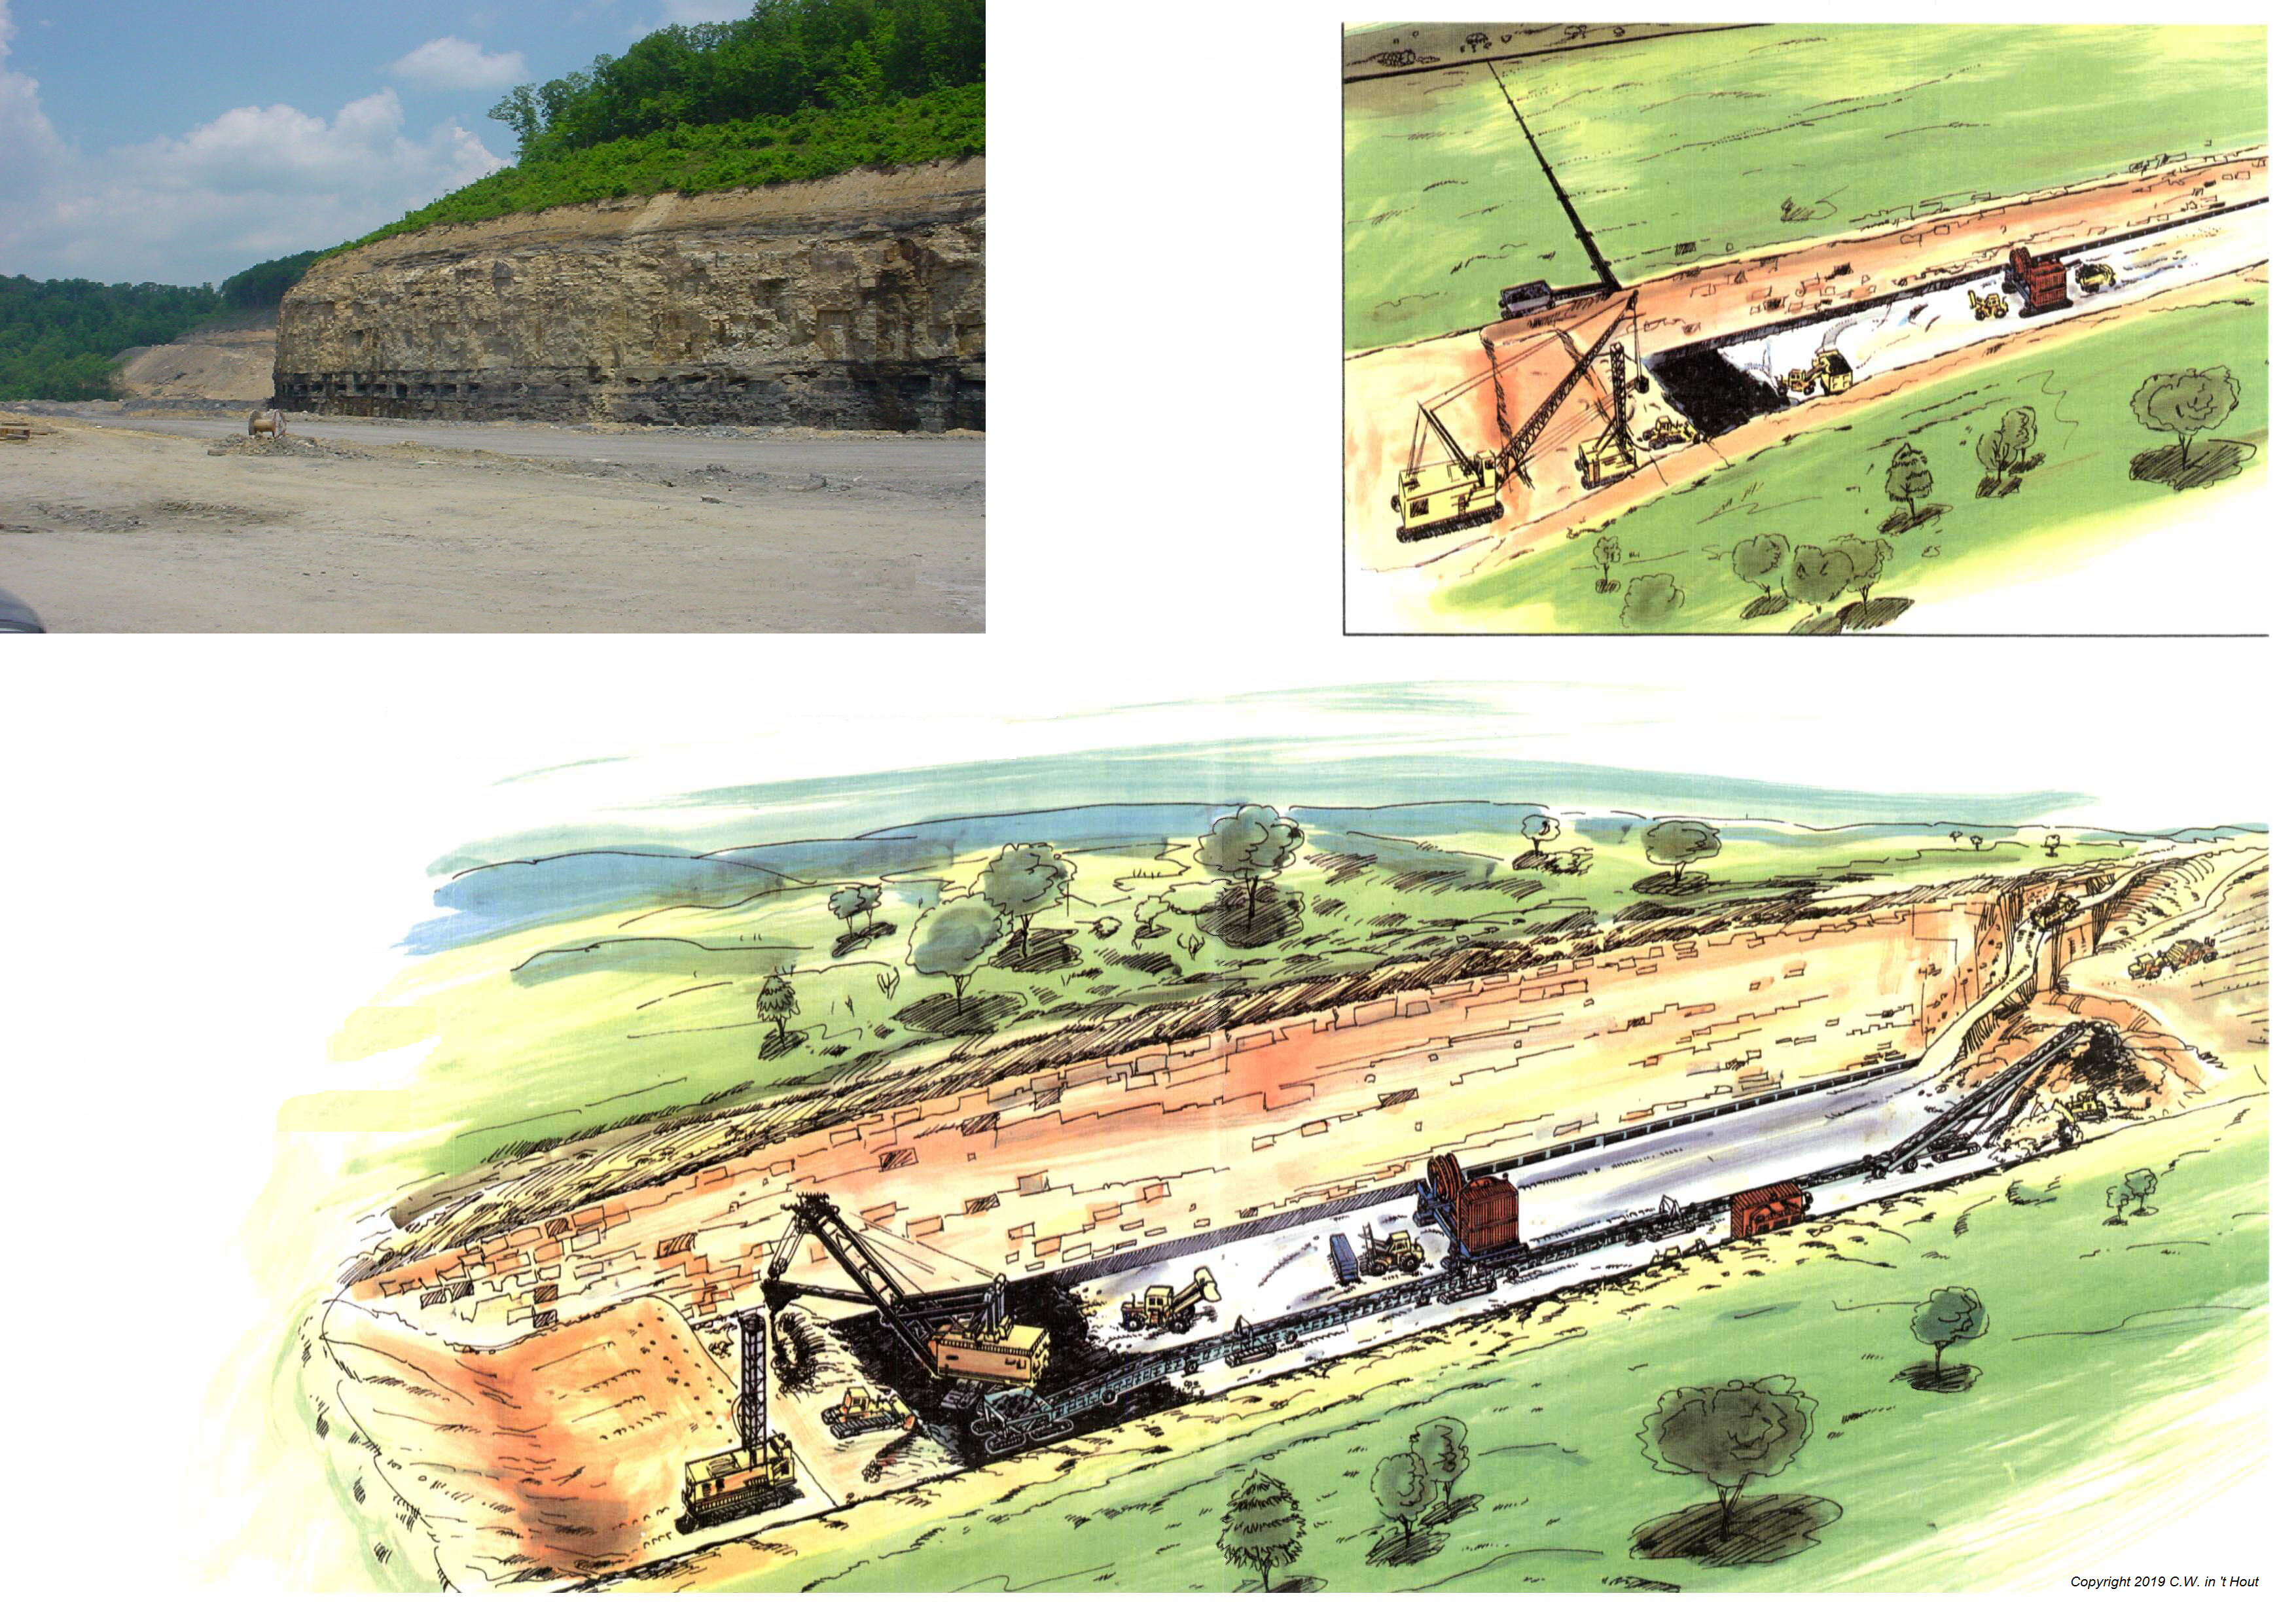 Artist Impression of Trench Mining